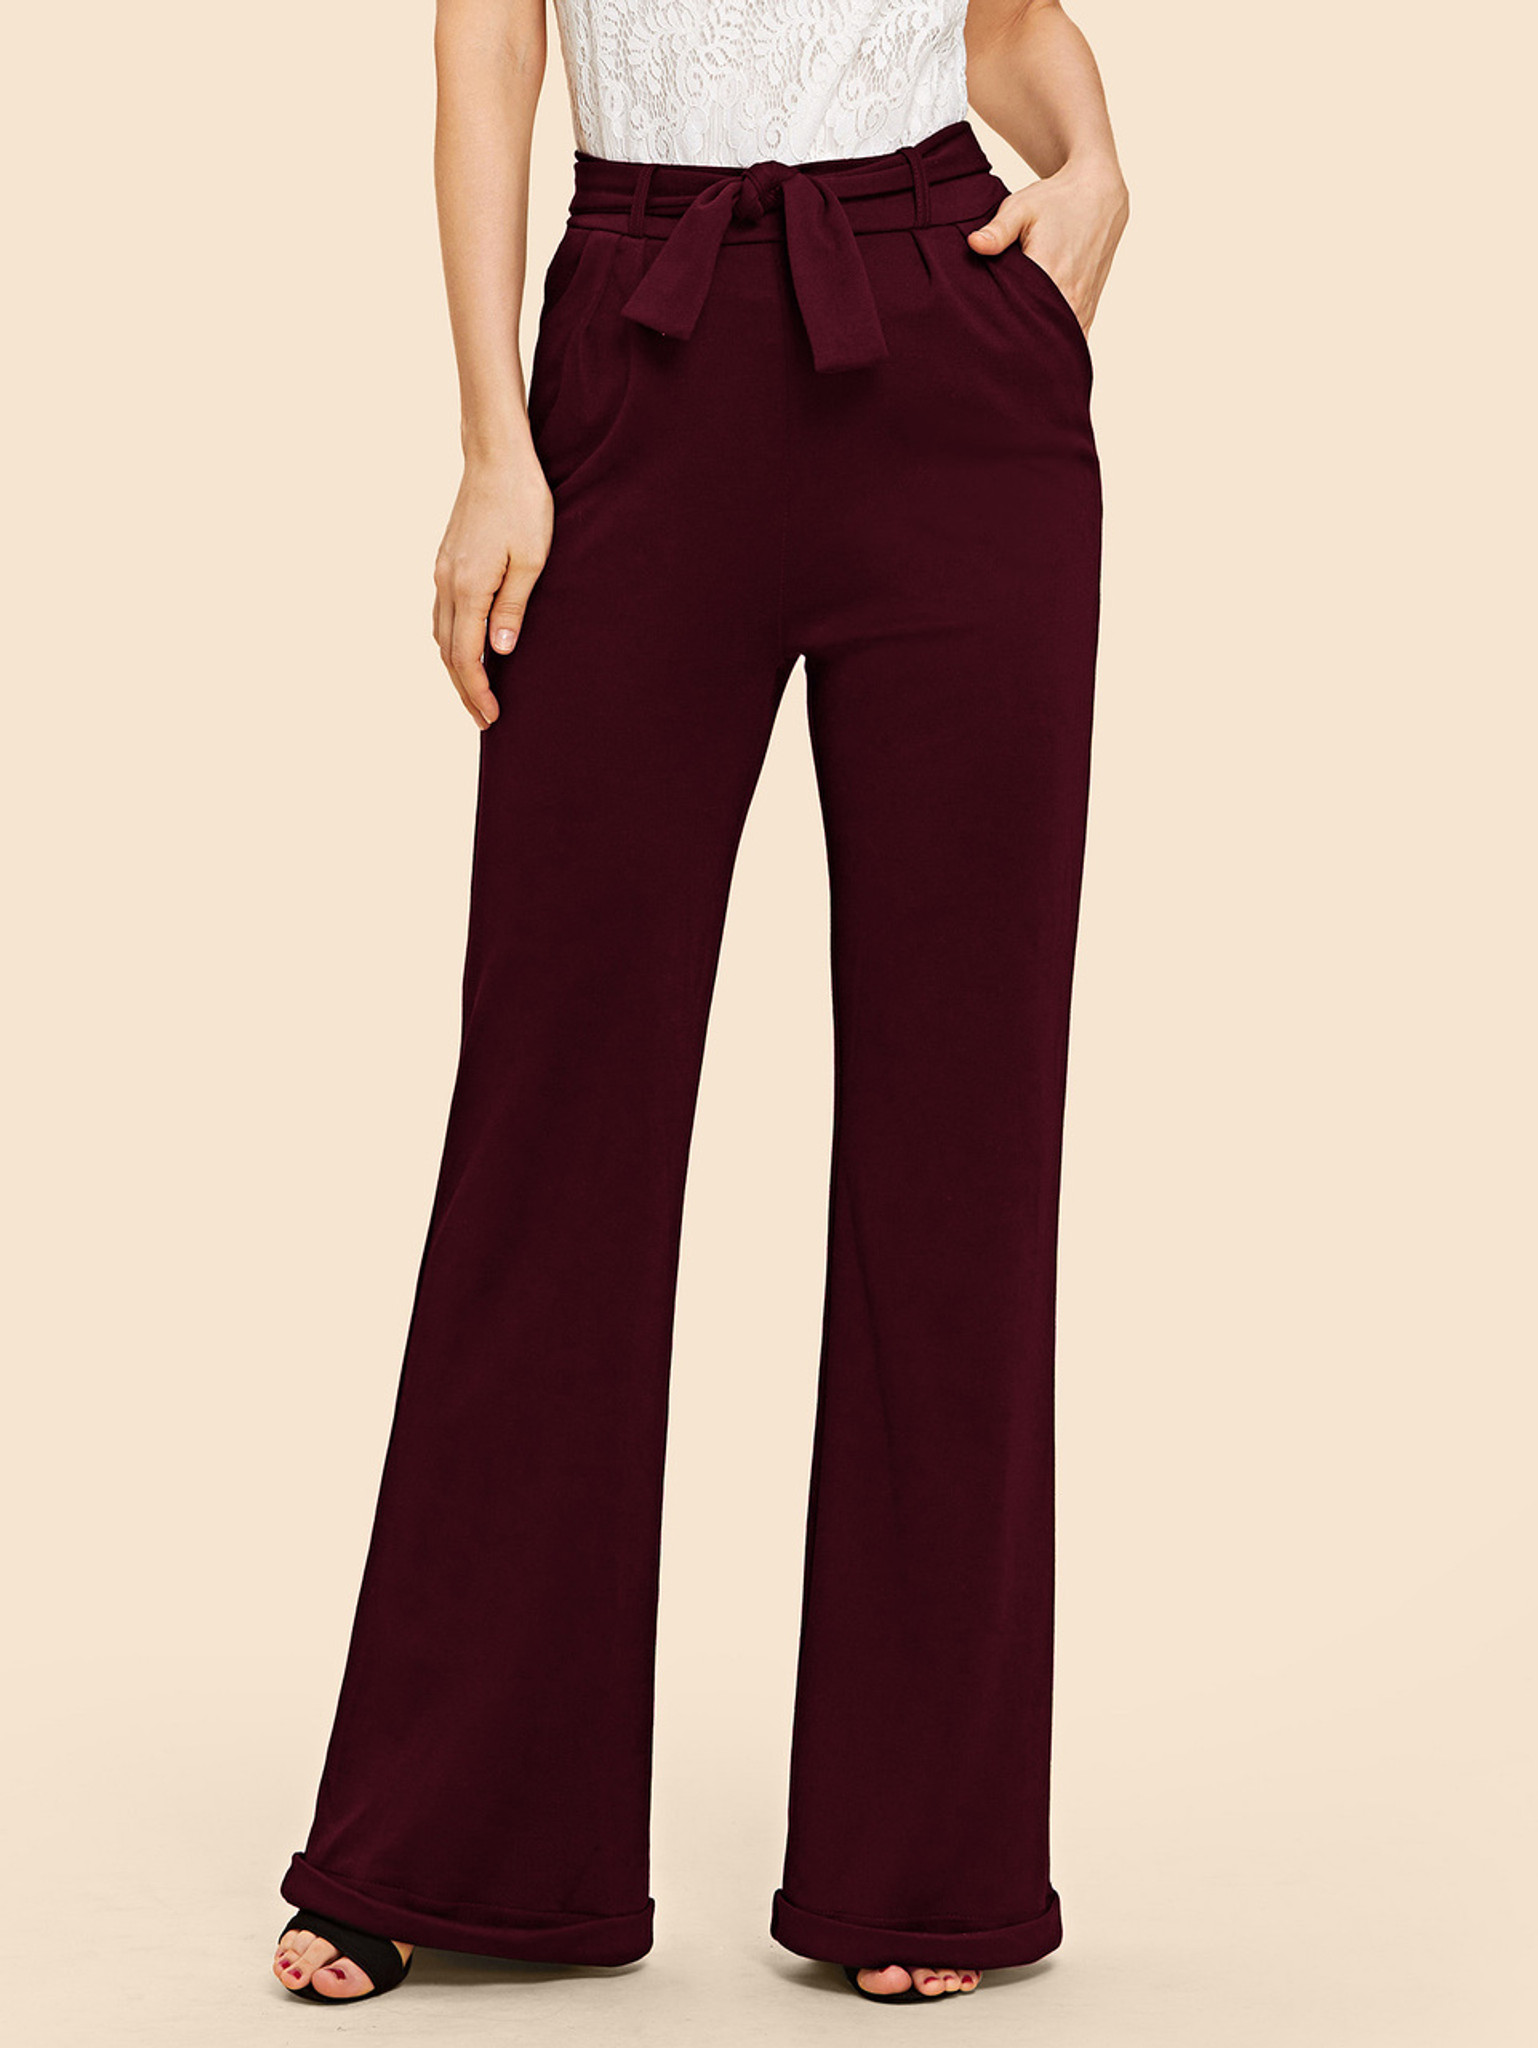 Fifth Avenue Womens NIXX Flare Cuffed Wide Leg Pants - Maroon